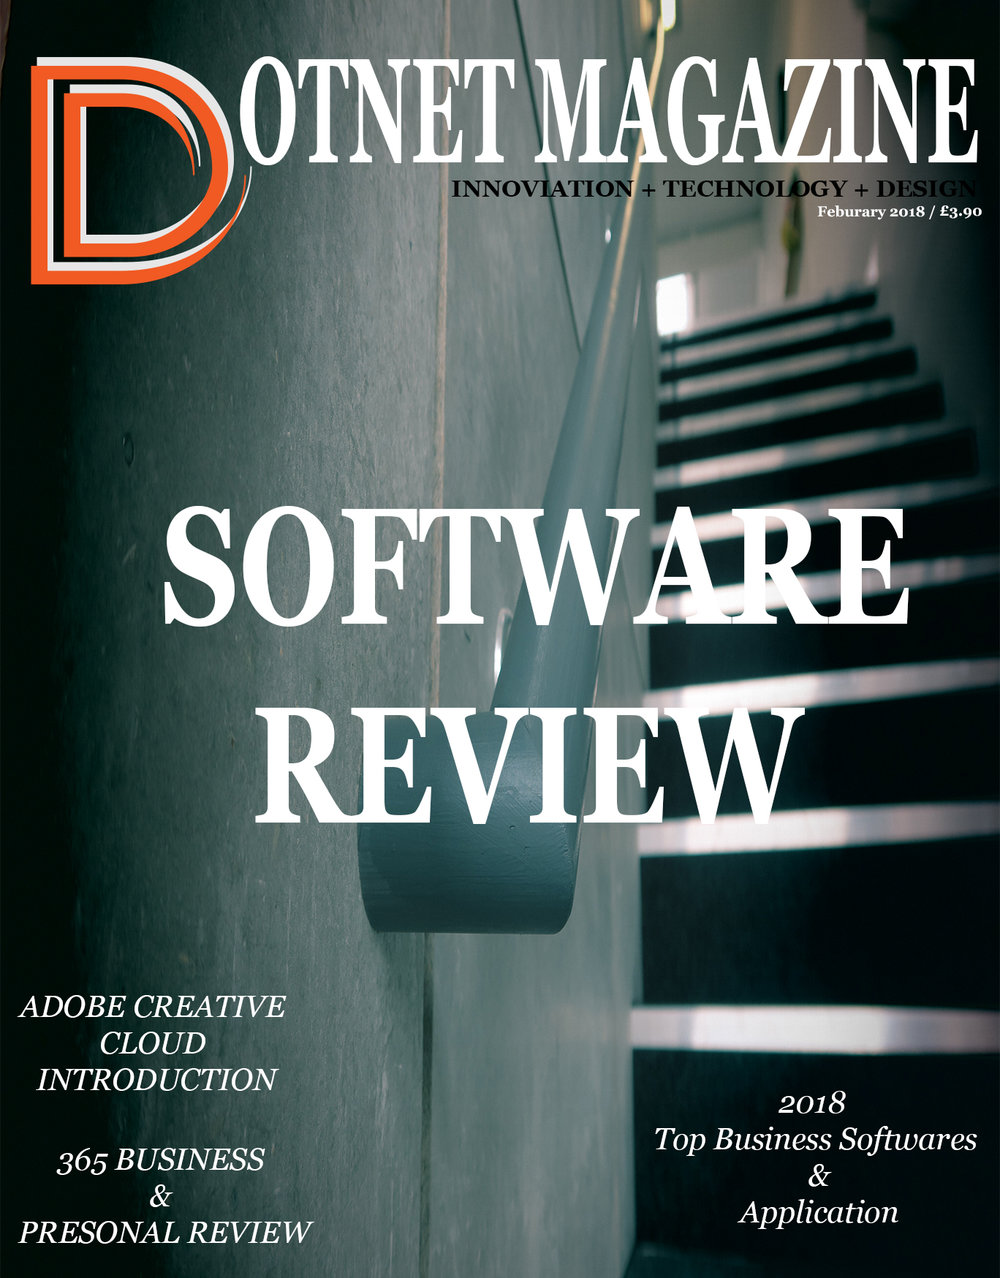 Software reView2019 - Coming Soon